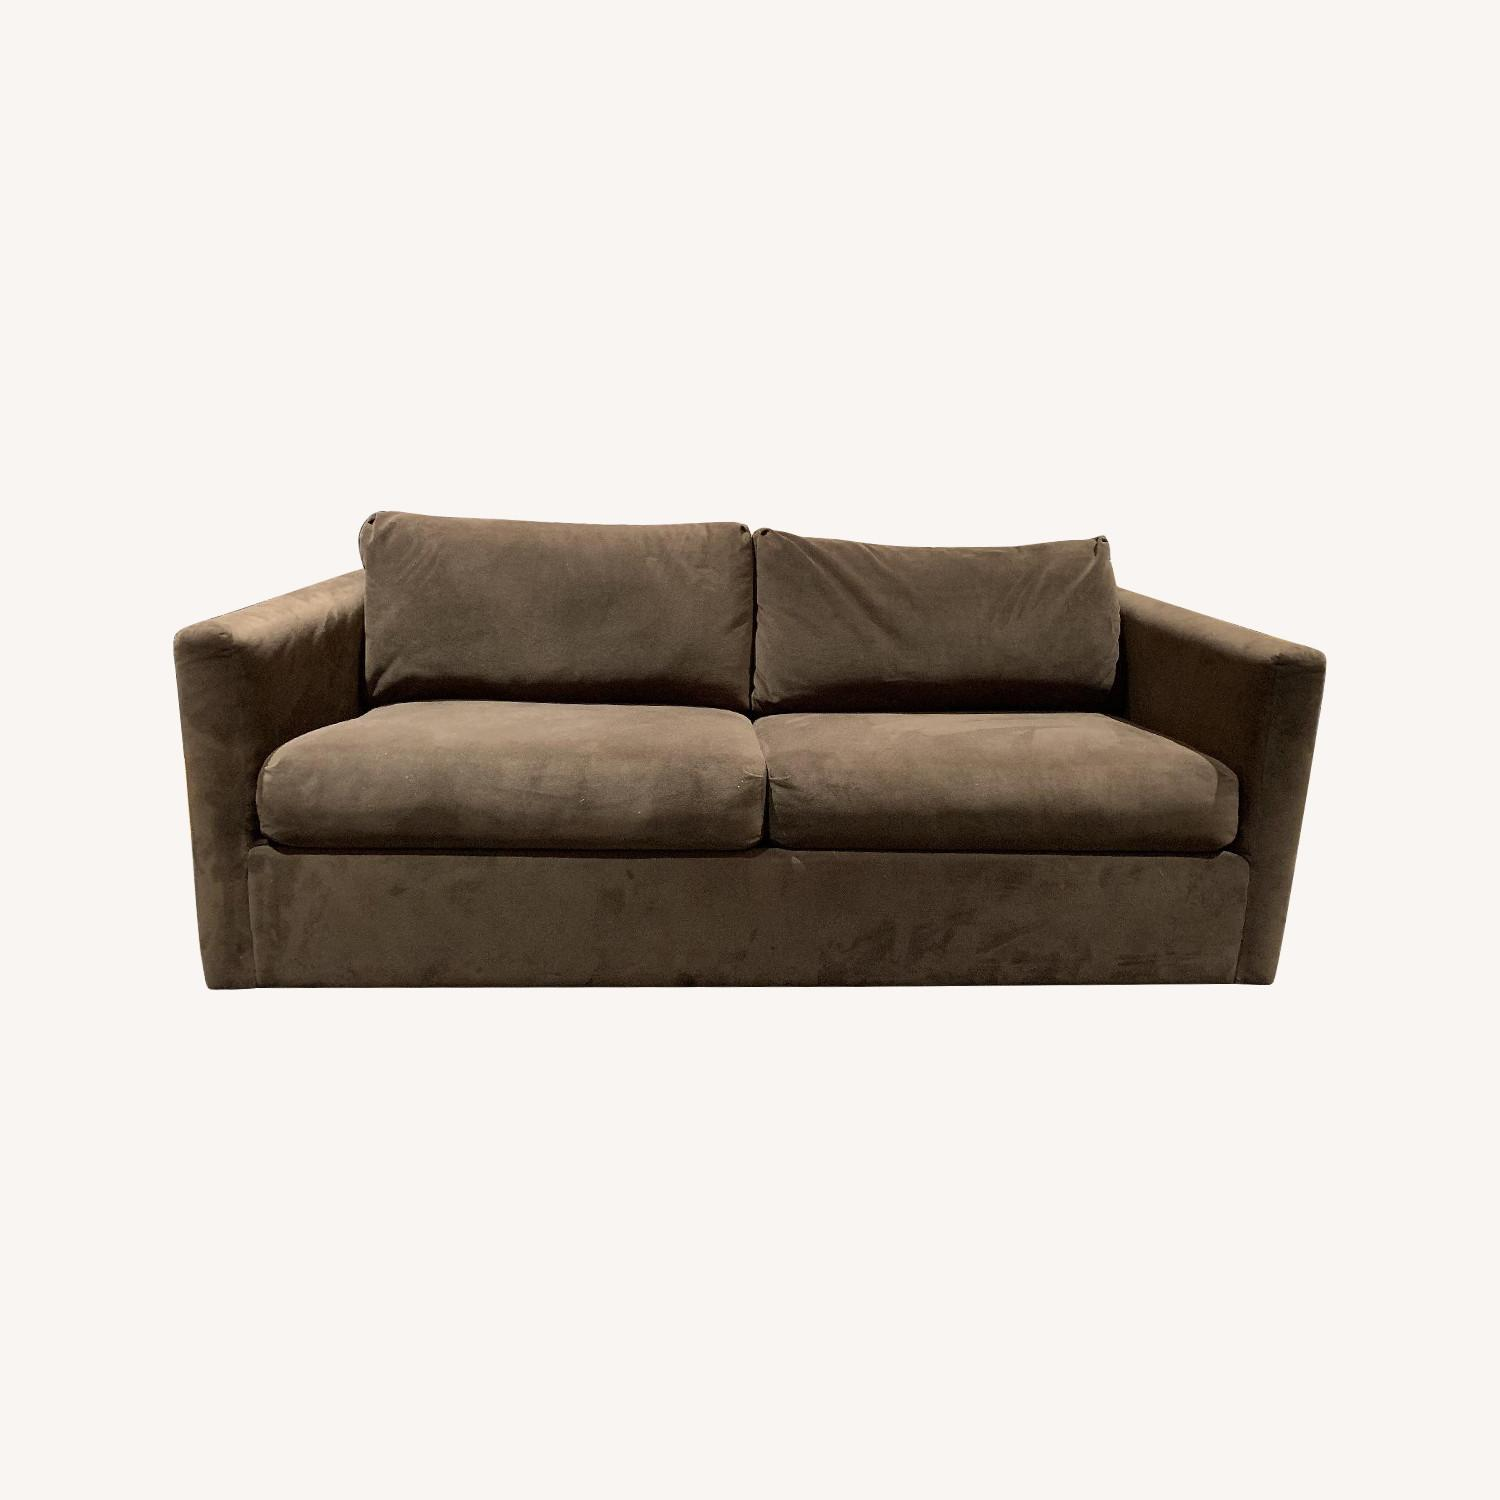 Club Furniture Queen Sleeper Sofa - image-0